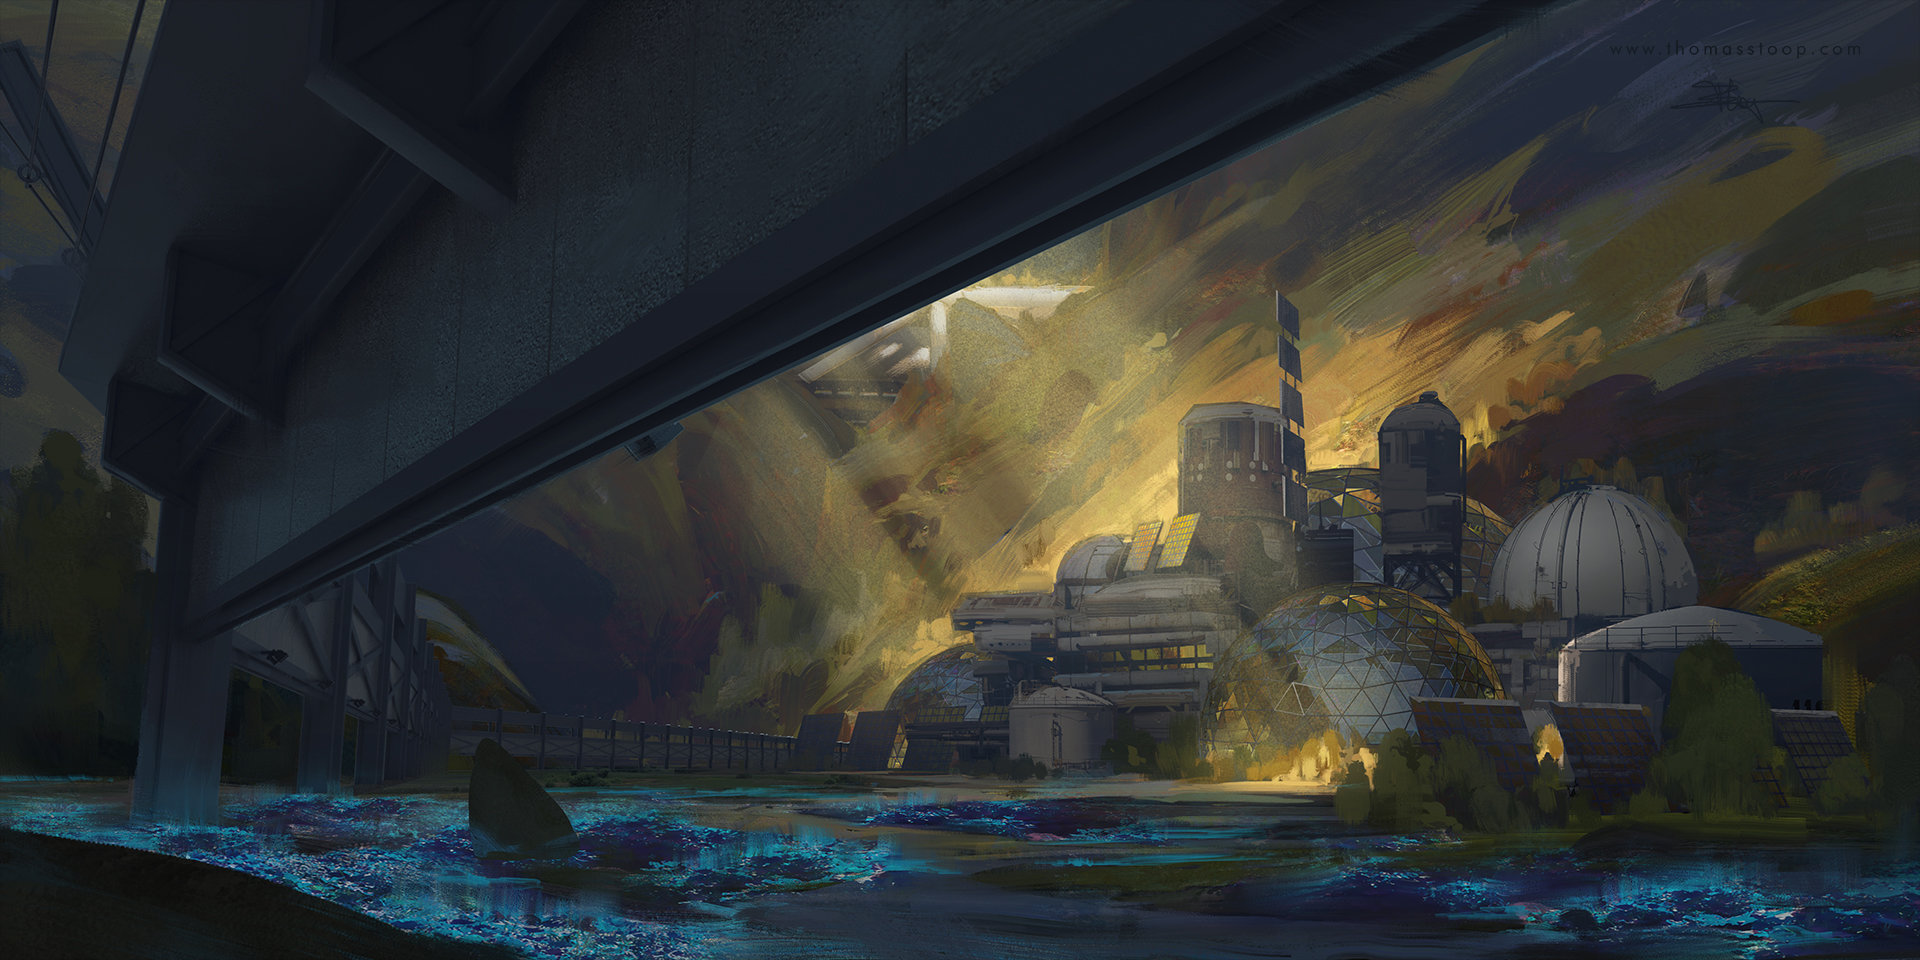 Thomas Stoop Concept Art Trollhjem Base